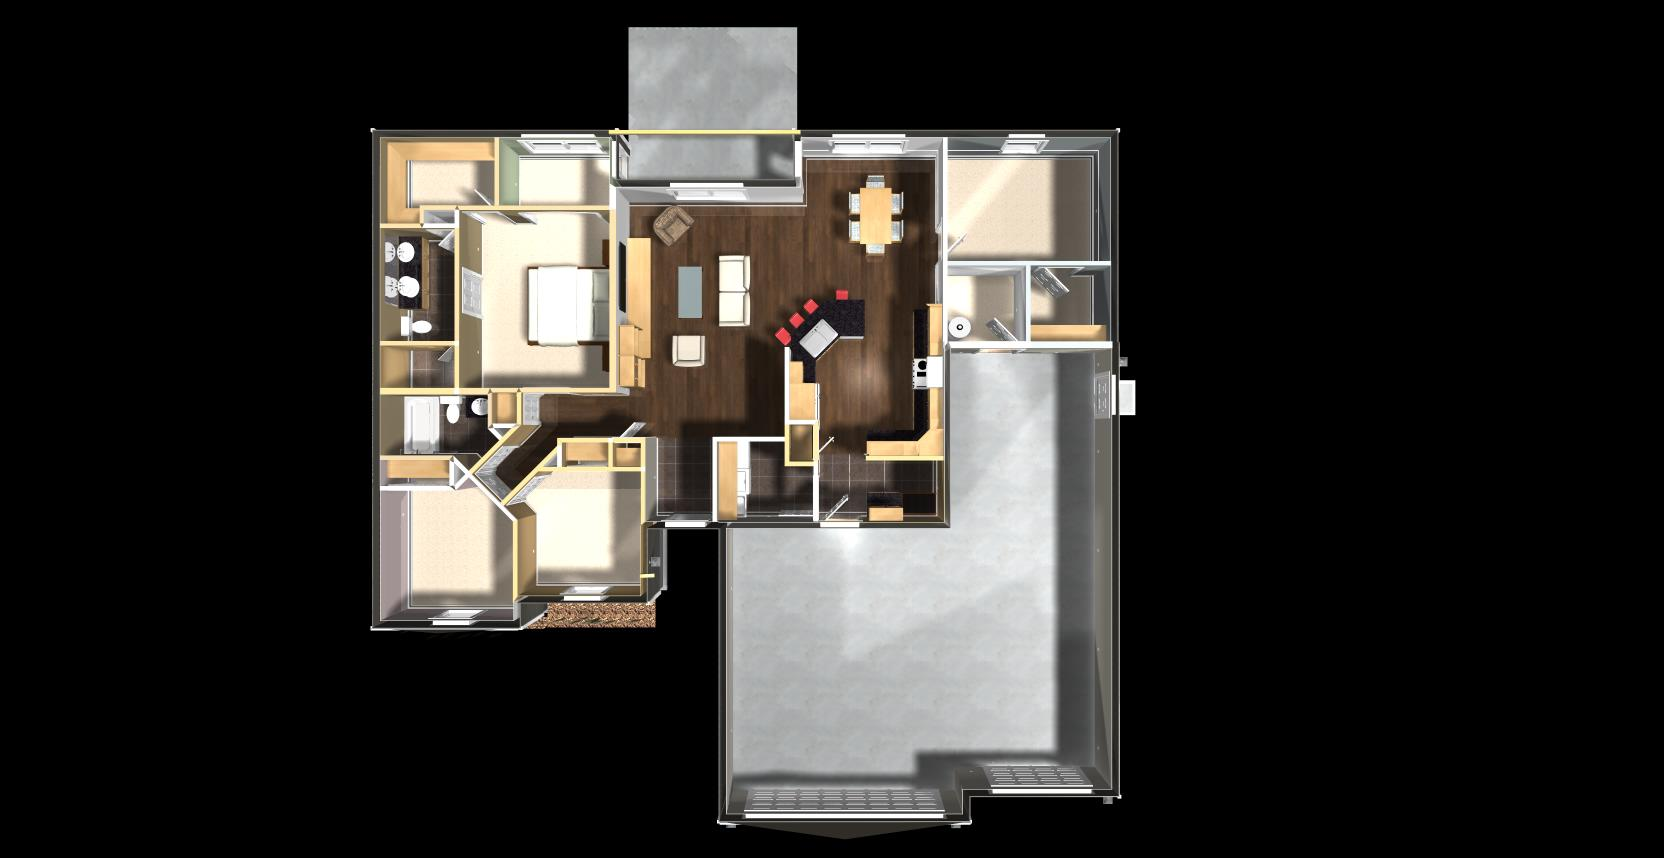 //kibhomes.com/wp-content/uploads/2020/04/MAIN-FLOOR-TOP-VIEW-3.jpg